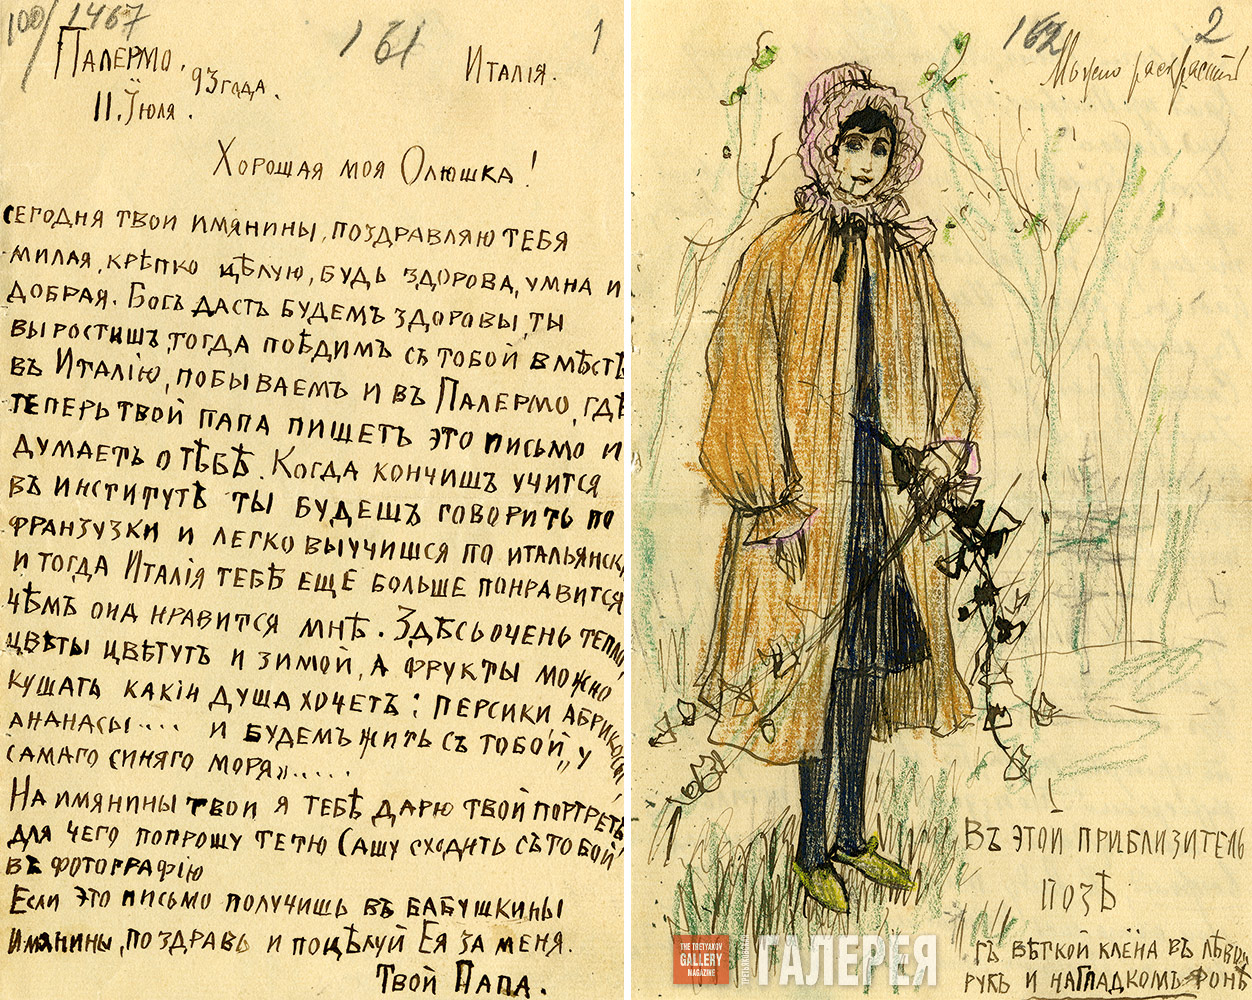 MIKHAIL NESTEROV'S LETTER TO OLGA NESTEROVA WITH HIS DRAWING ...